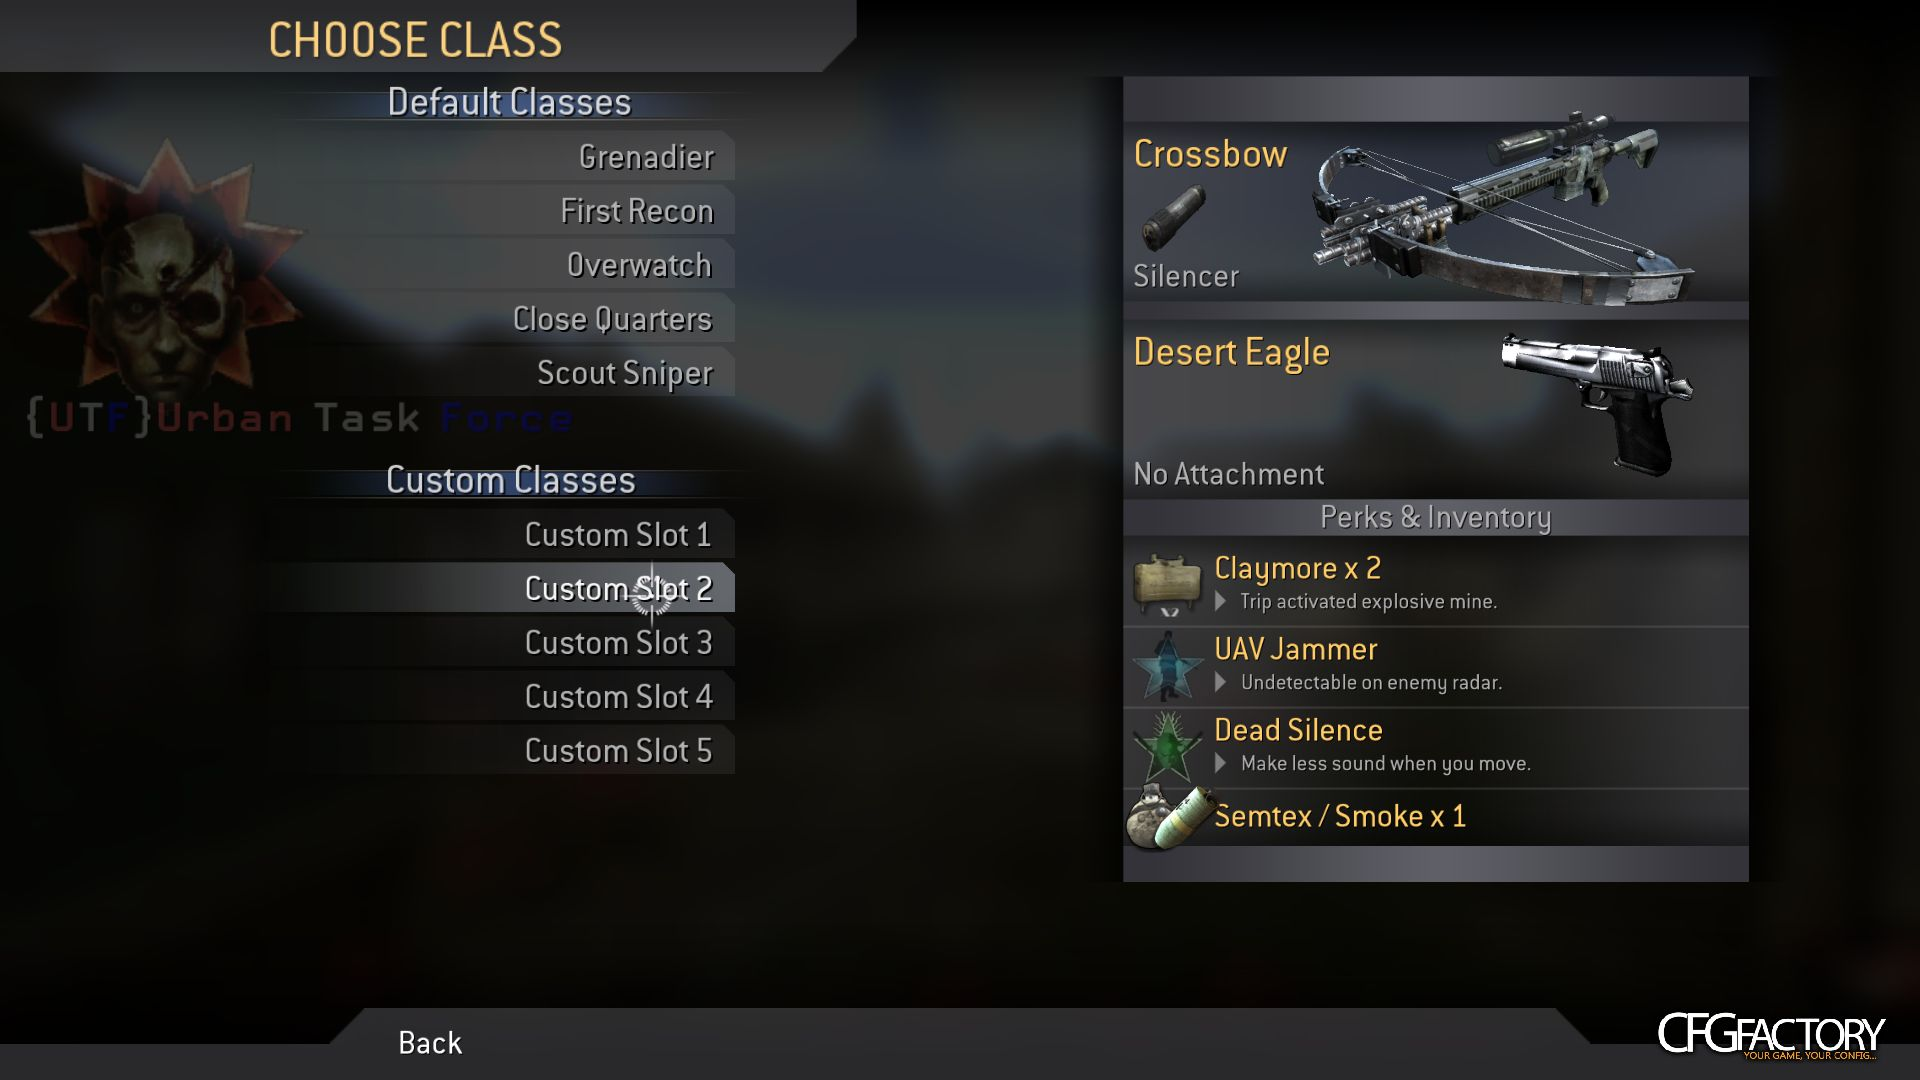 cod4, custom model skins, hd black skin for custom deagle, {osg}brodie|co|